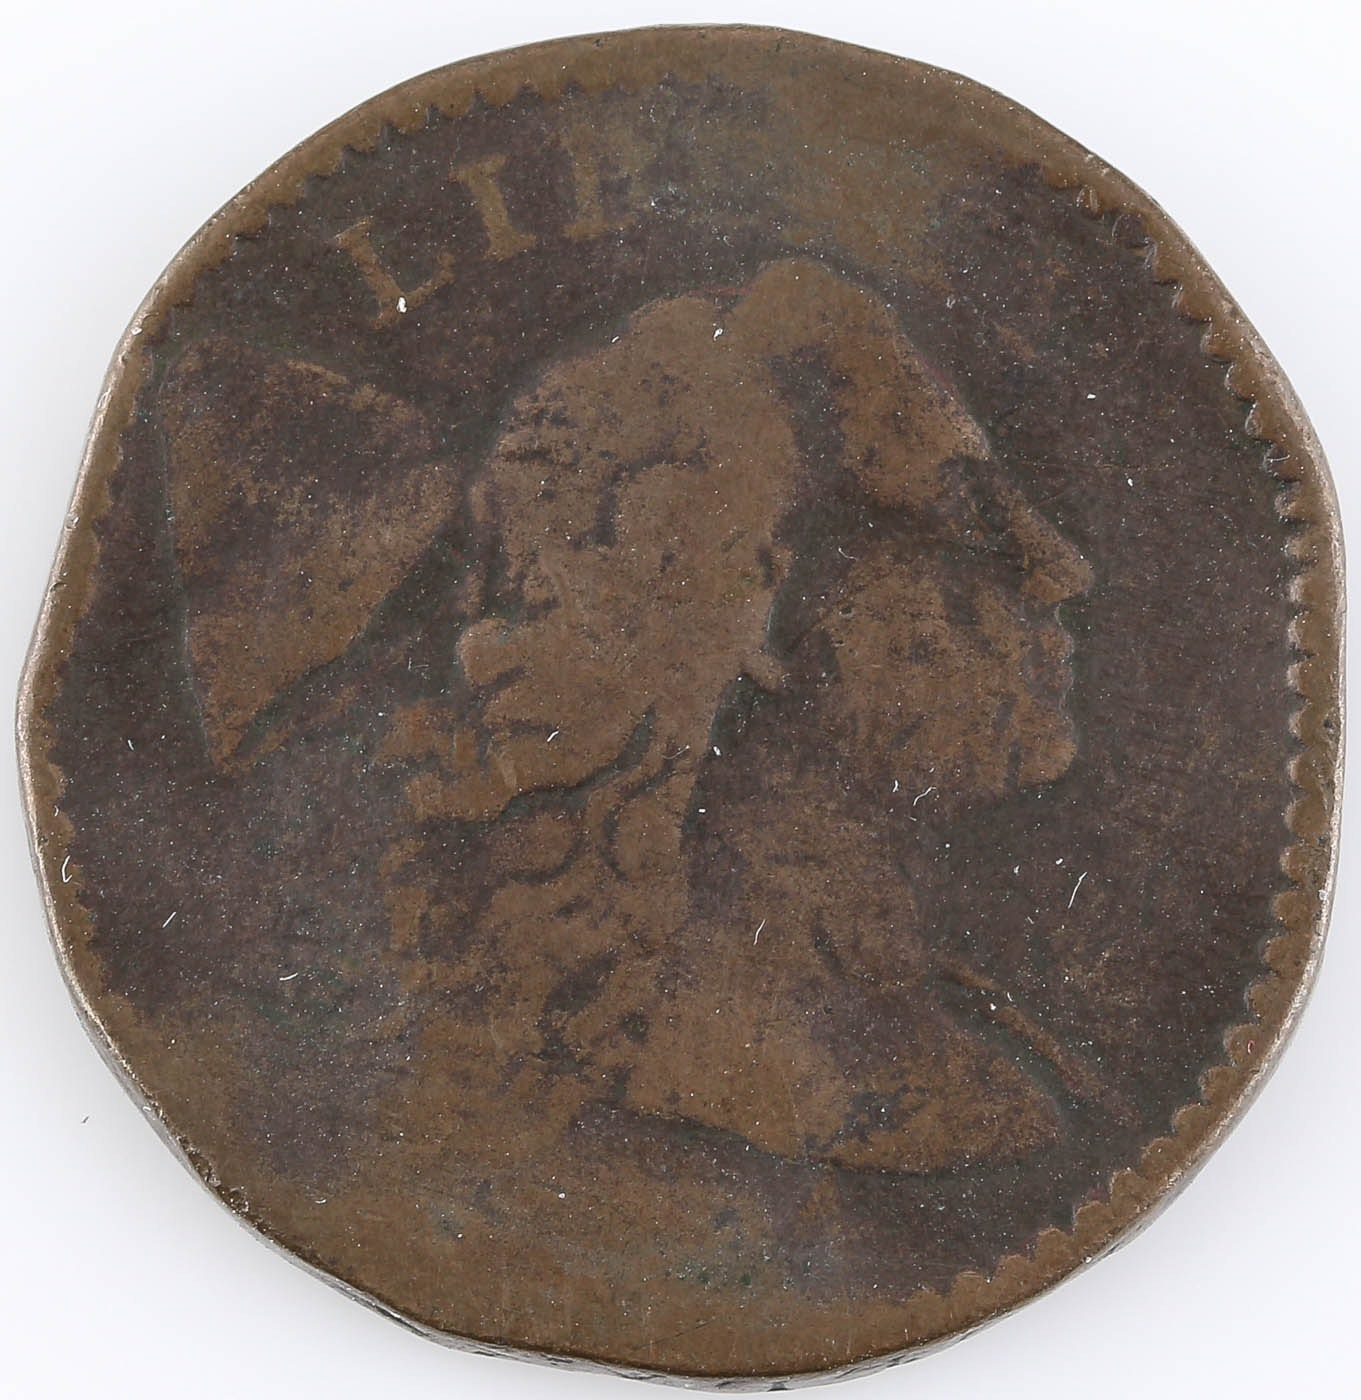 1794 Flowing Hair Liberty Cap Head of 1794 Large Cent